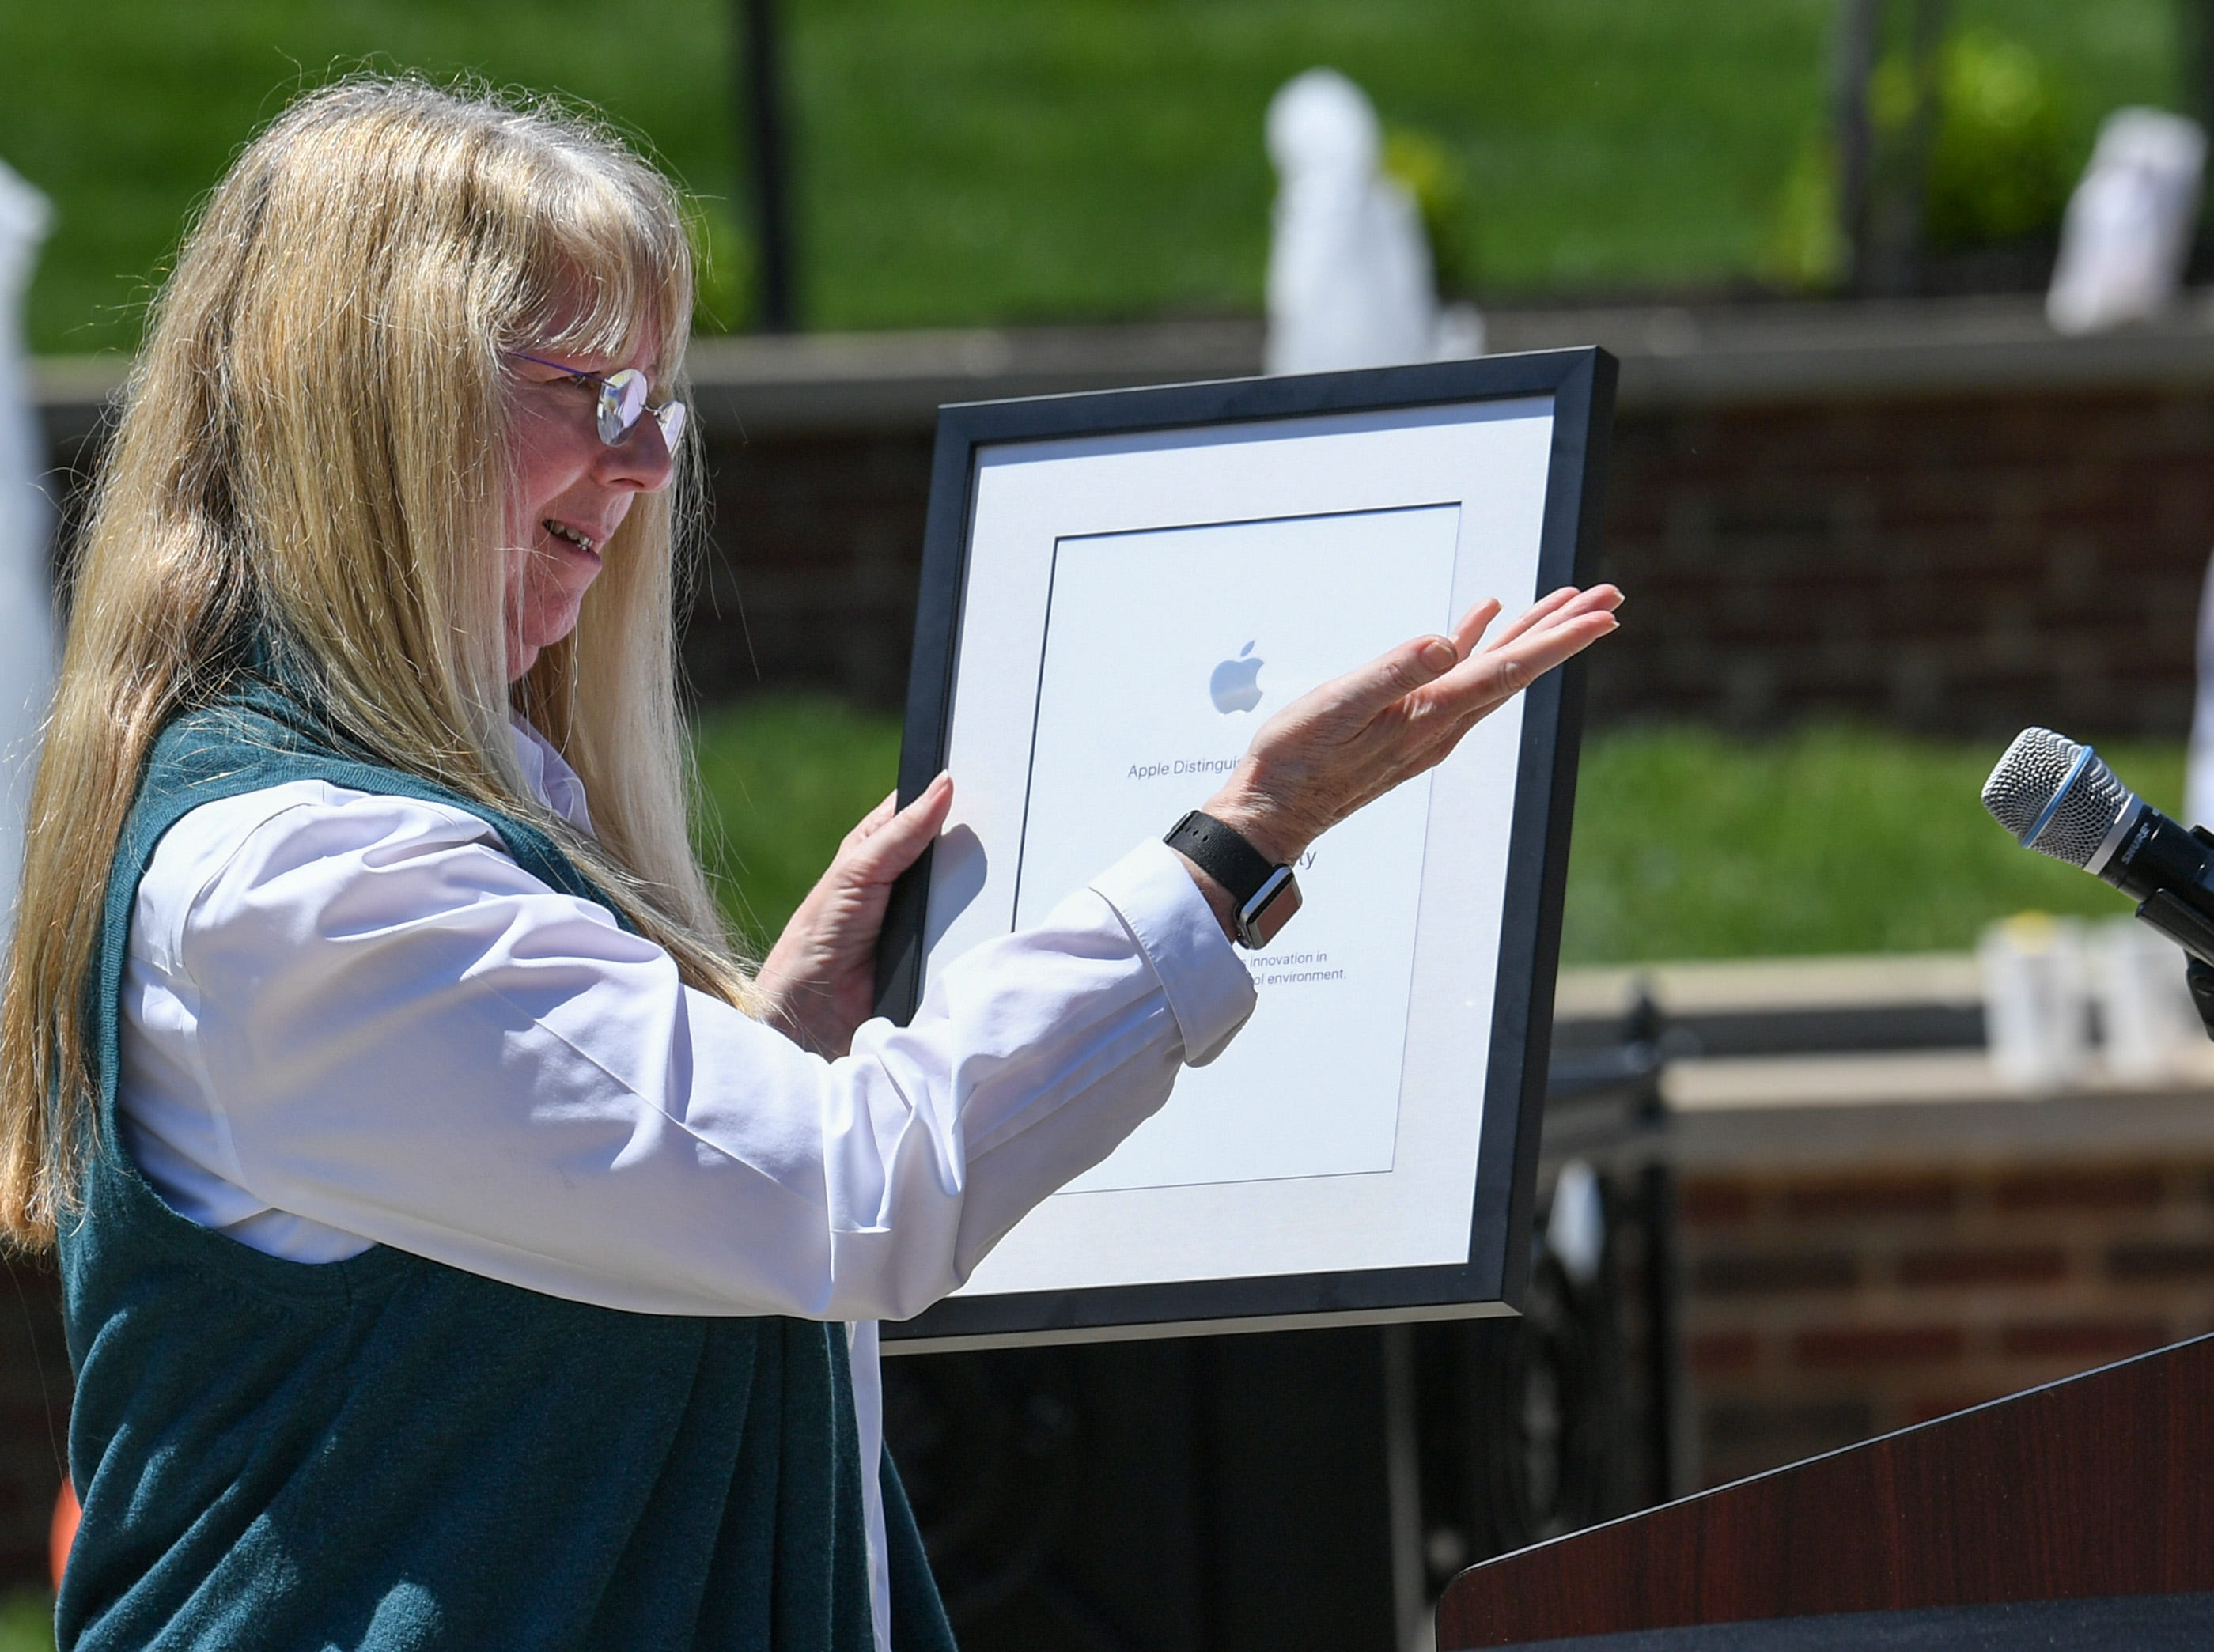 Anne Van Middlesworth, a National Higher Education Market Development Manager for Apple at the Apple Distinguished School award event in front of the G. Ross Anderson Student Center at Anderson University in Anderson Tuesday. President Evans Whitaker accepted the certificate from Anne Van Middlesworth, a National Higher Education Development Manager for Apple before two hundred students, faculty and guests. It was the third time receiving the distinction since the school started a digital learning initiative in 2011.